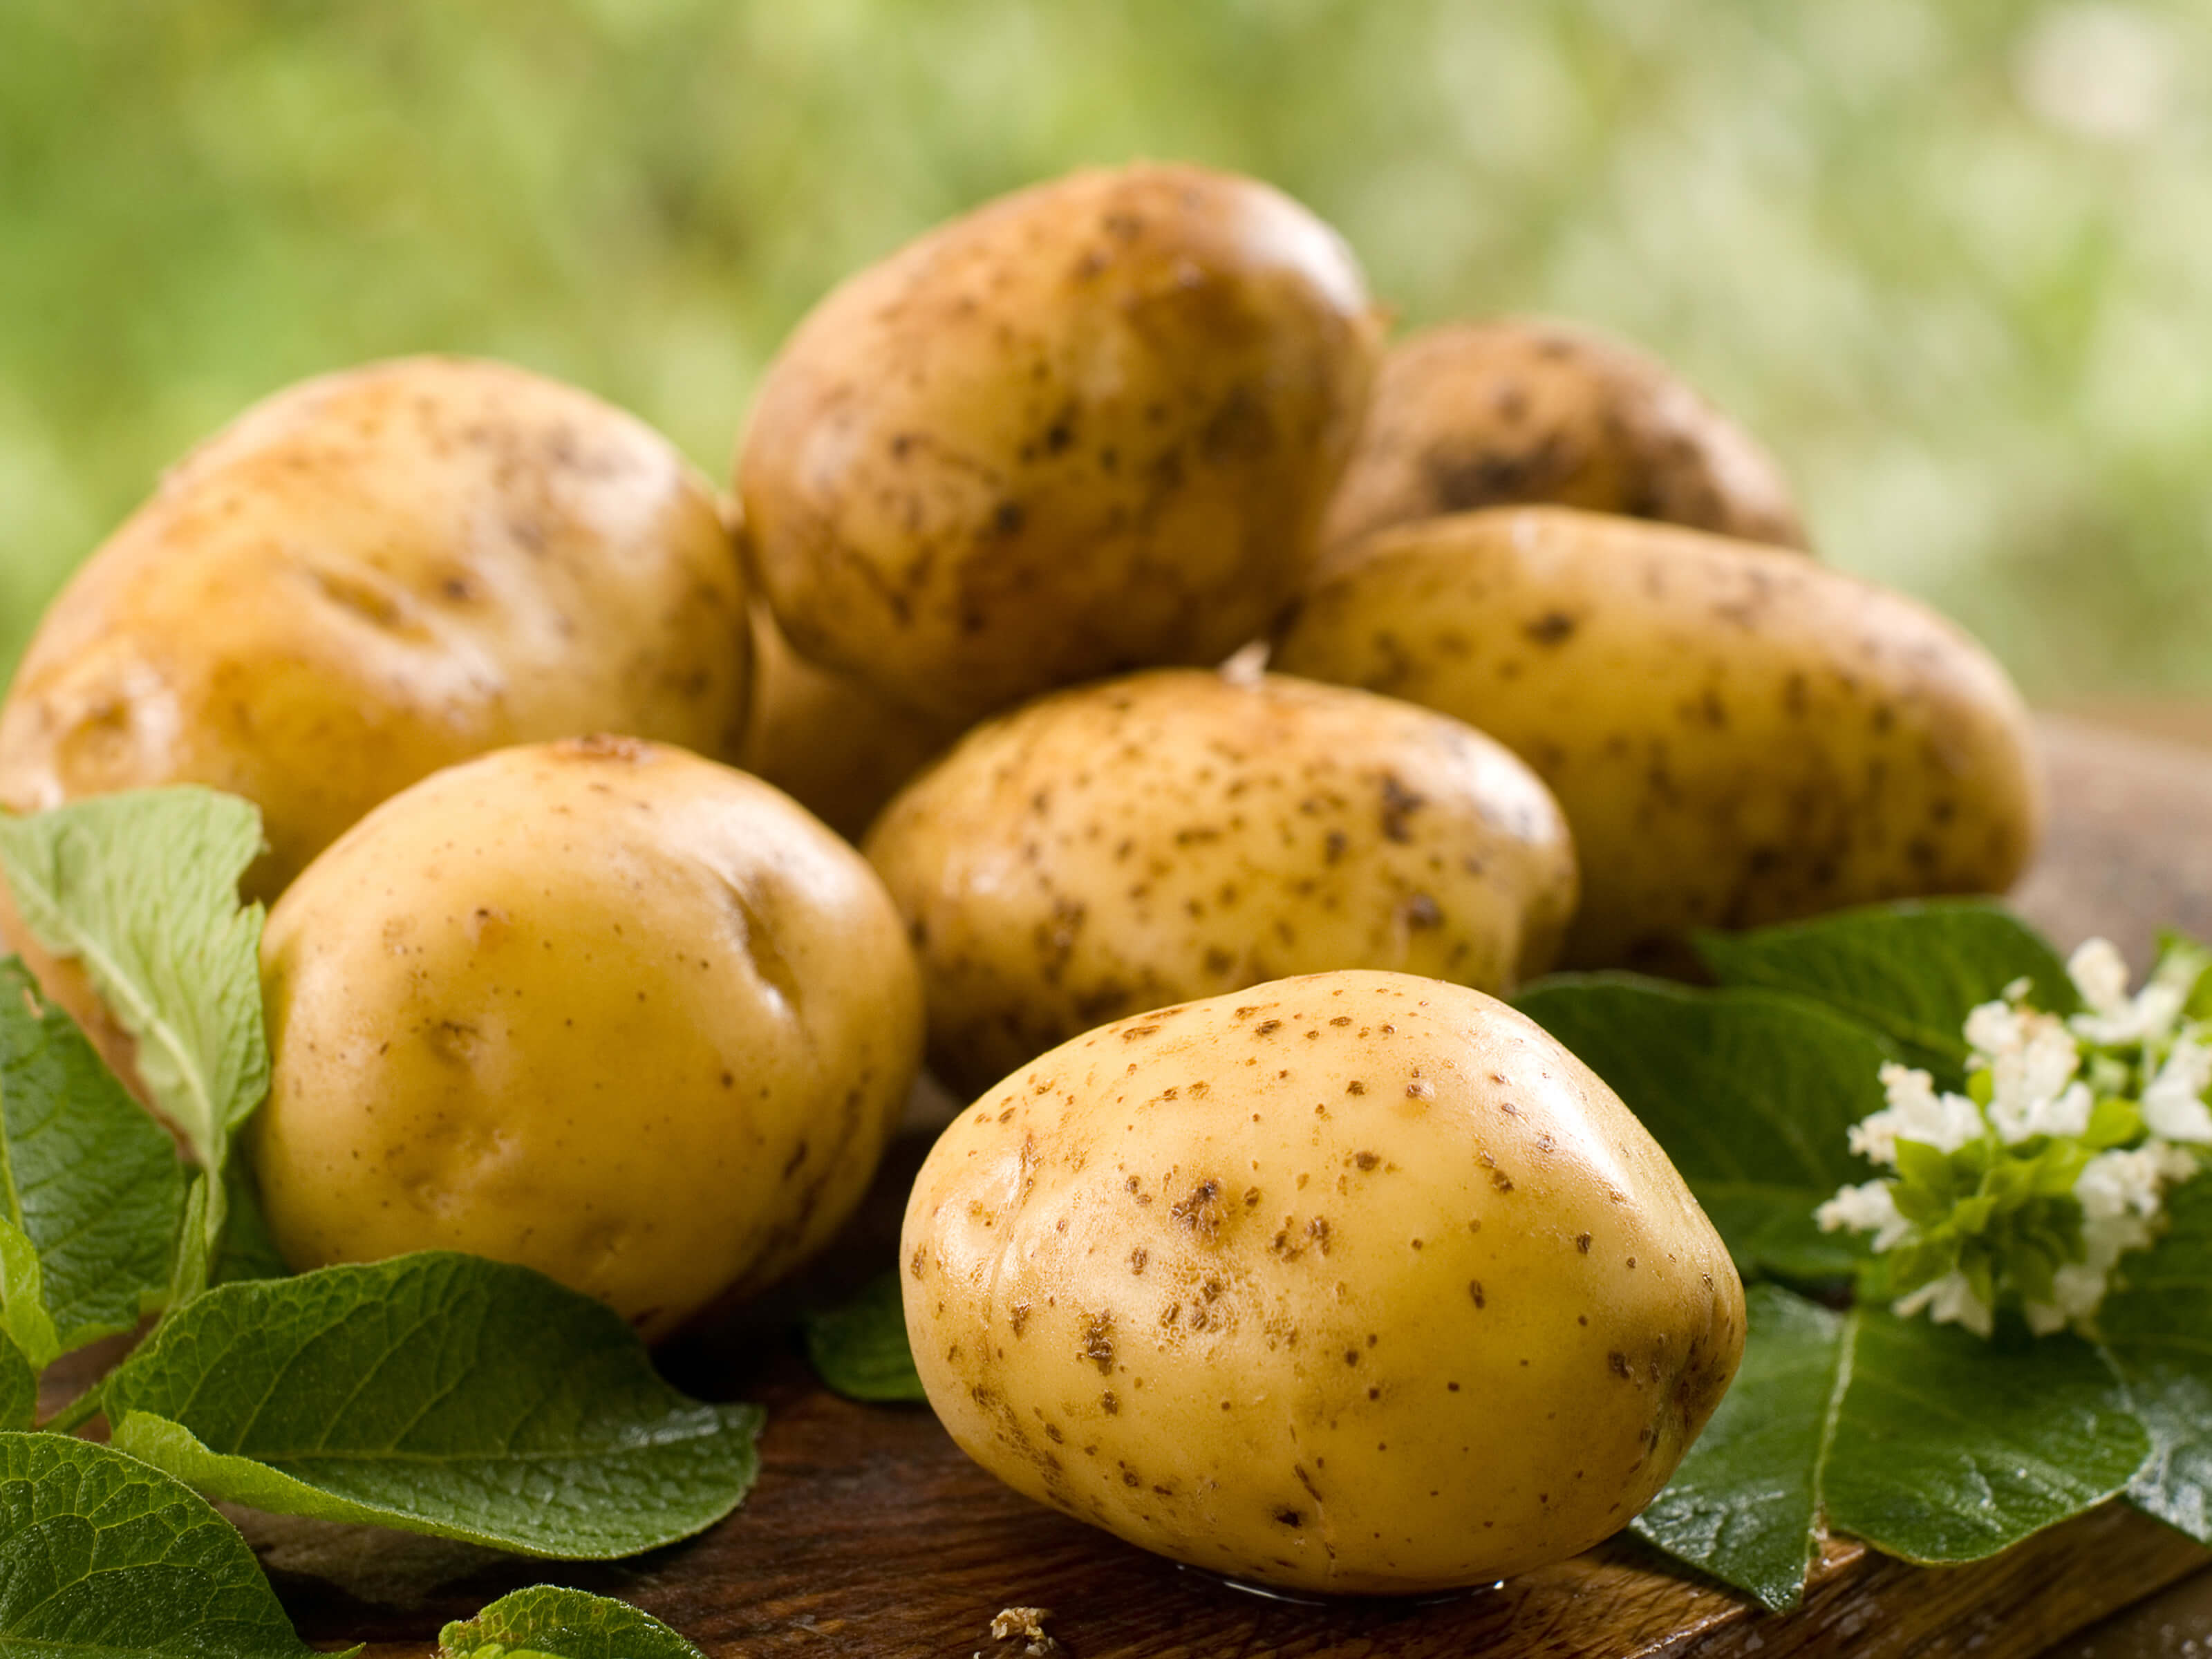 Quality potatoes